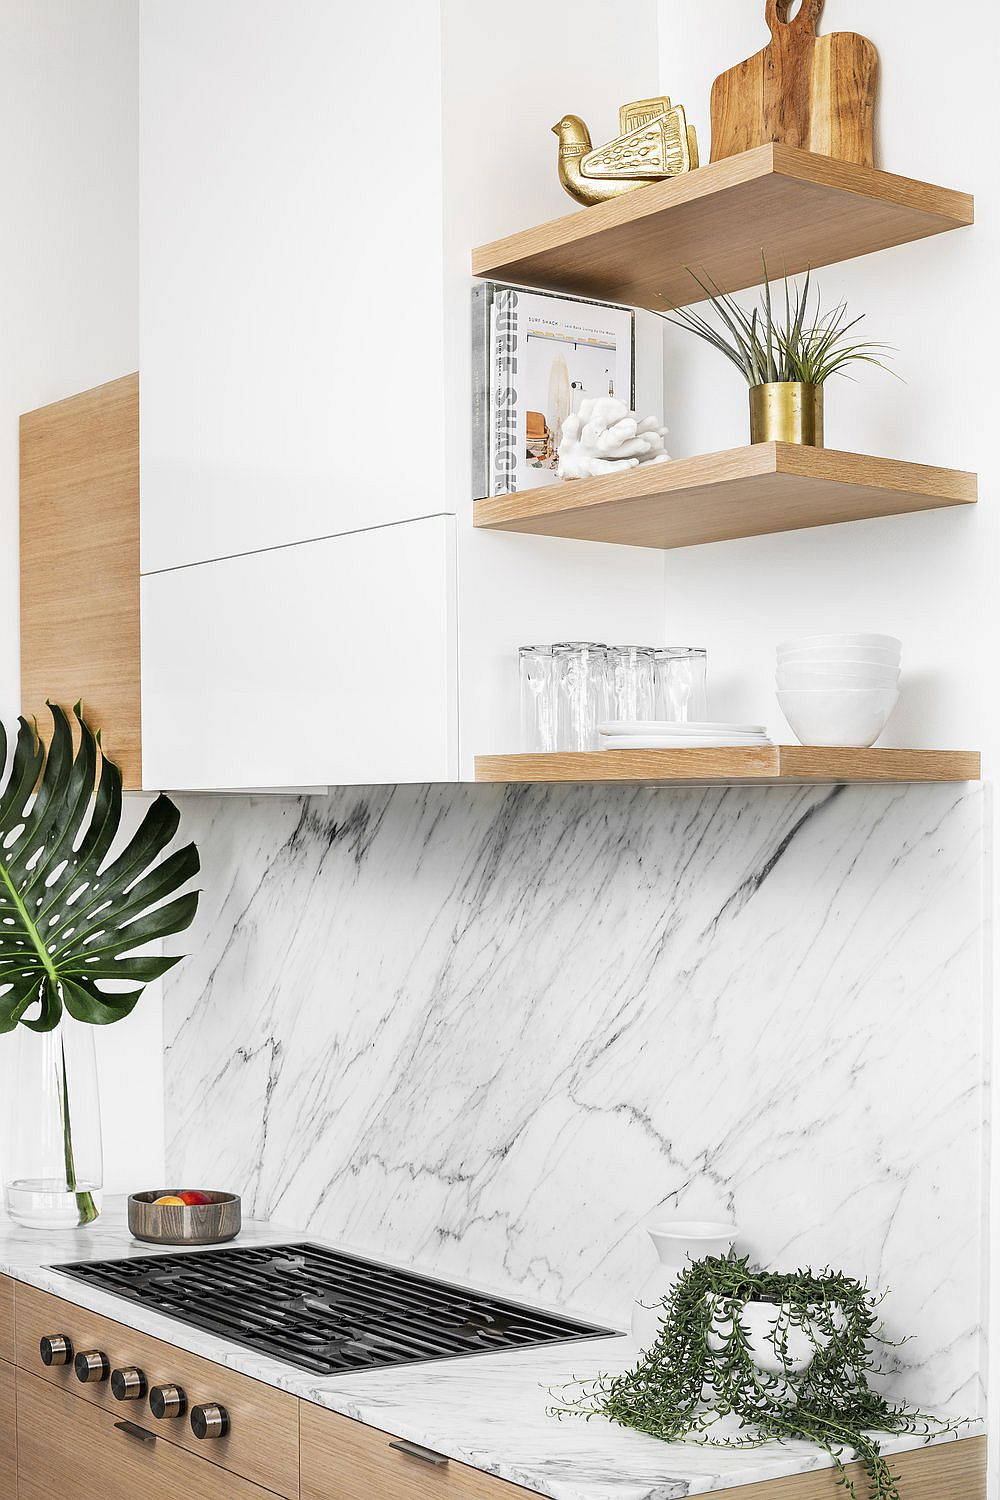 Carrara-marble-and-oak-kitchen-of-the-Midcentury-home